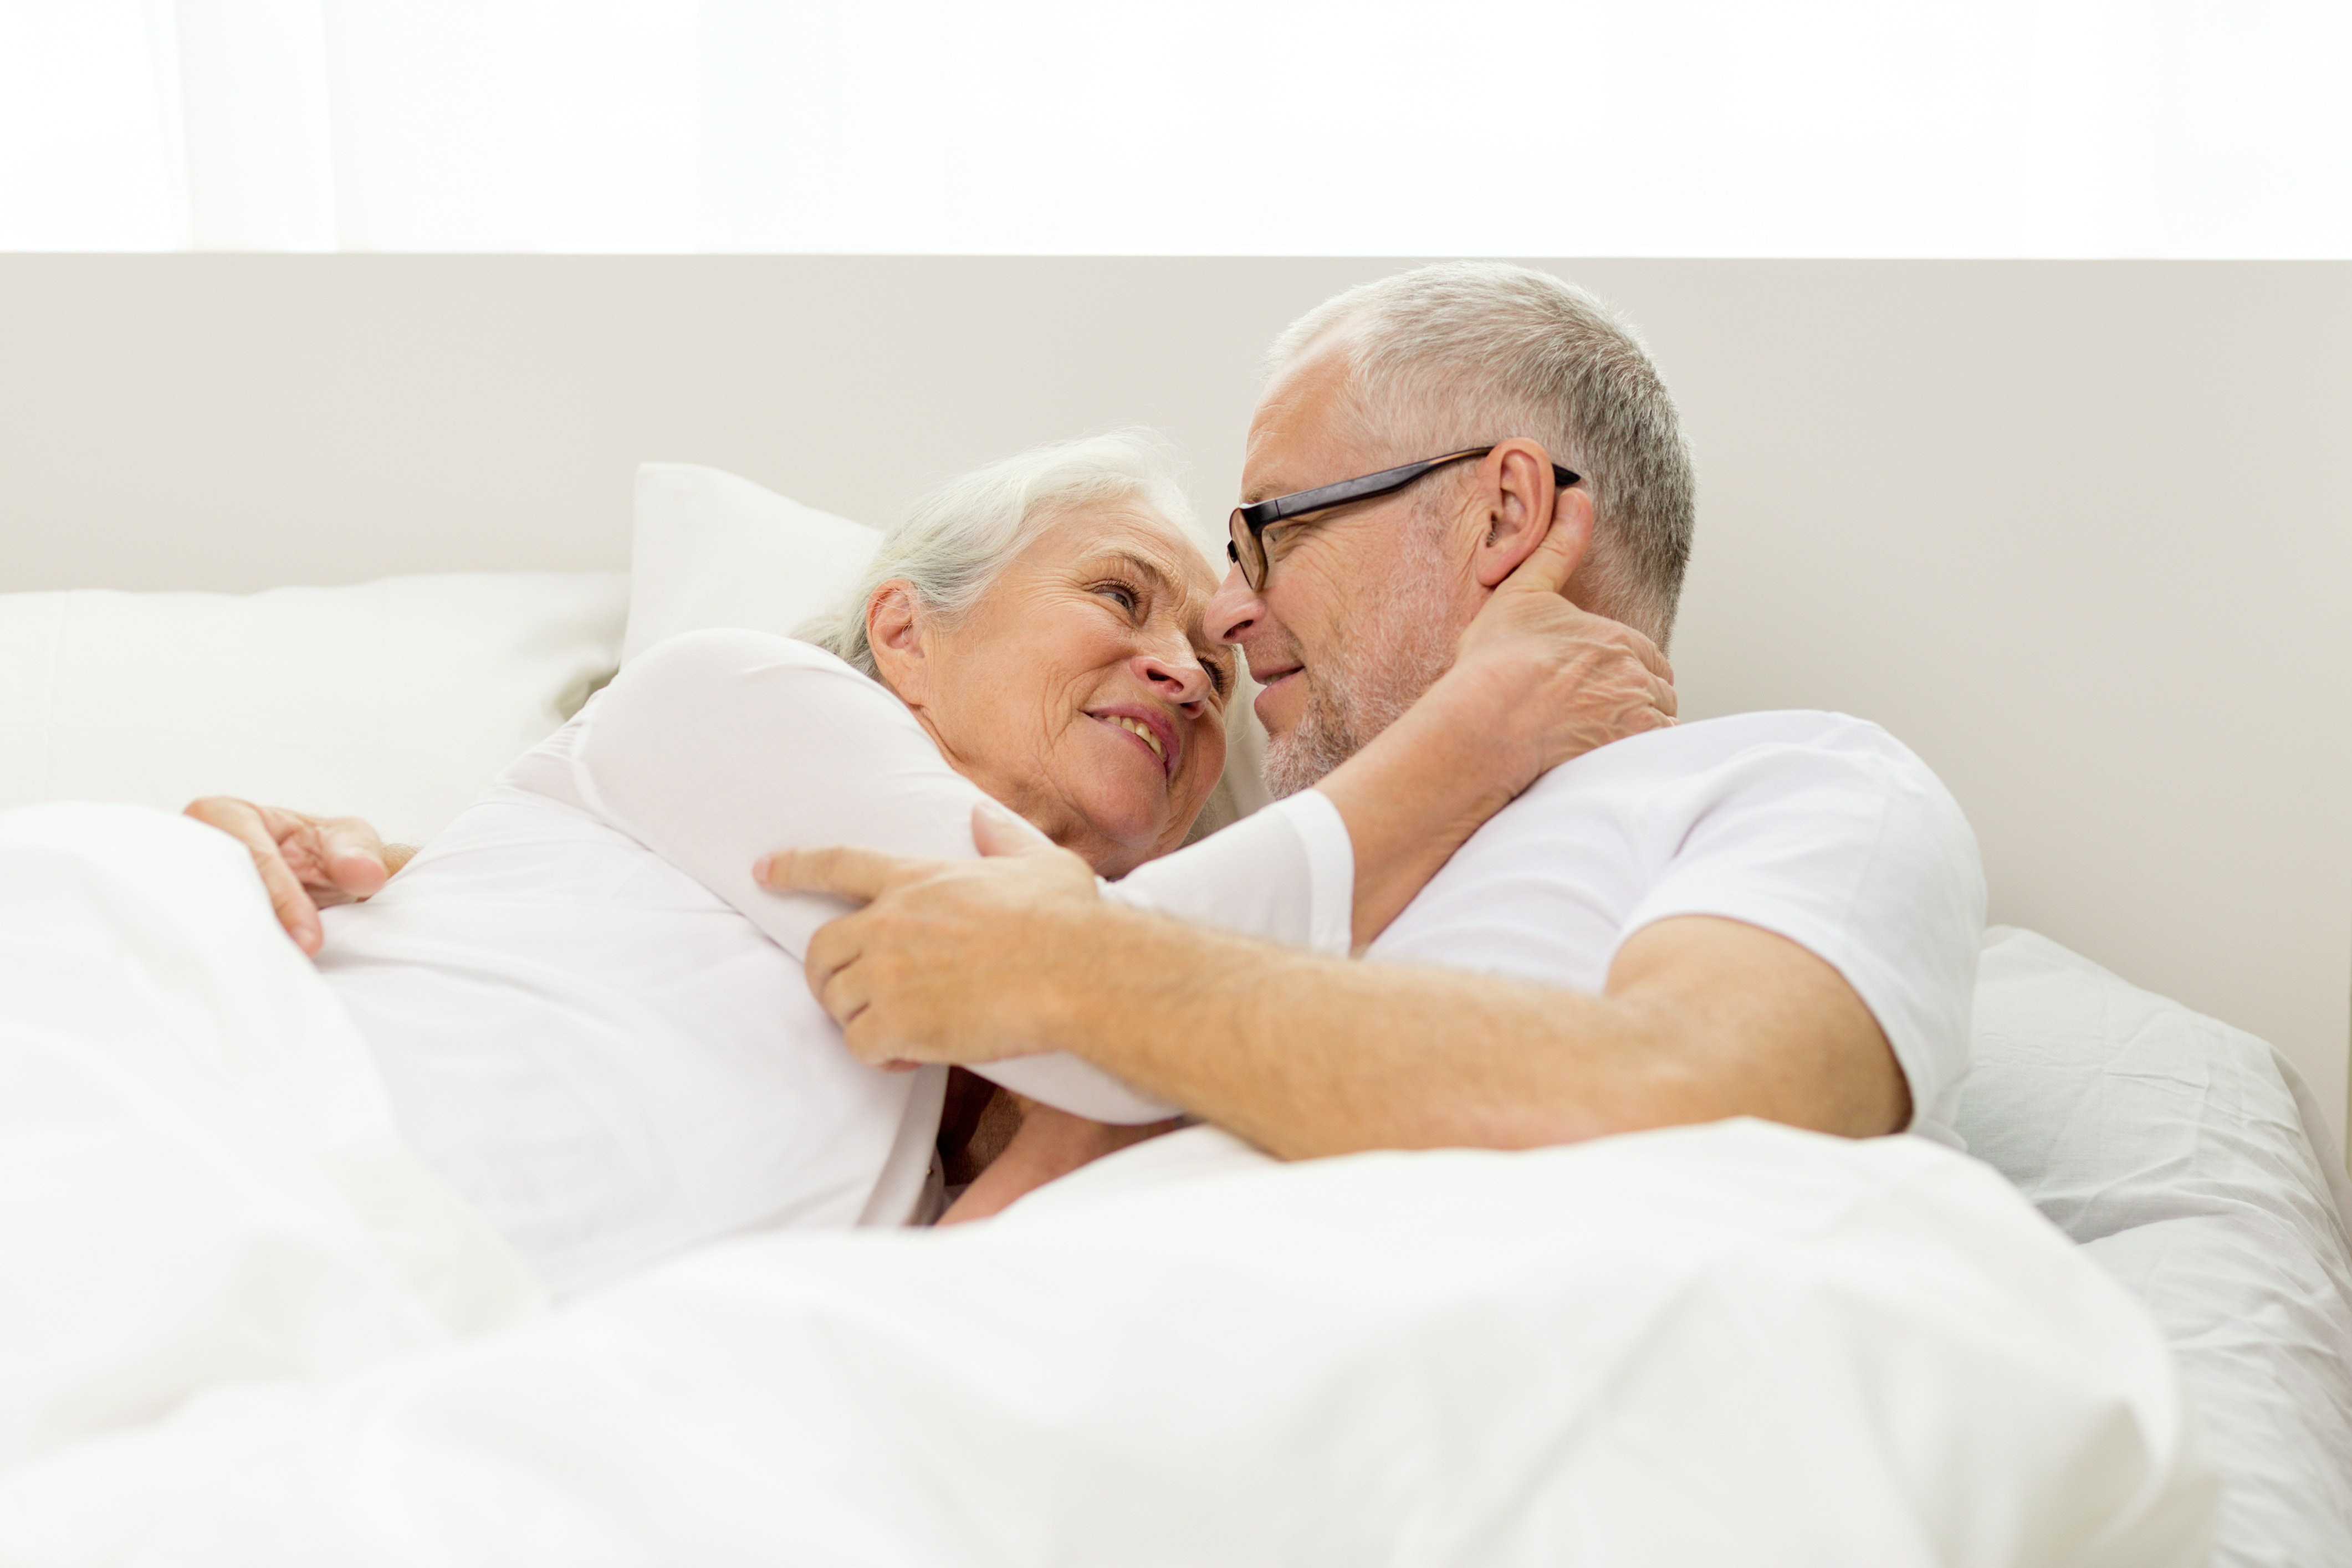 Sexuality desire activity and intimacy in the elderly